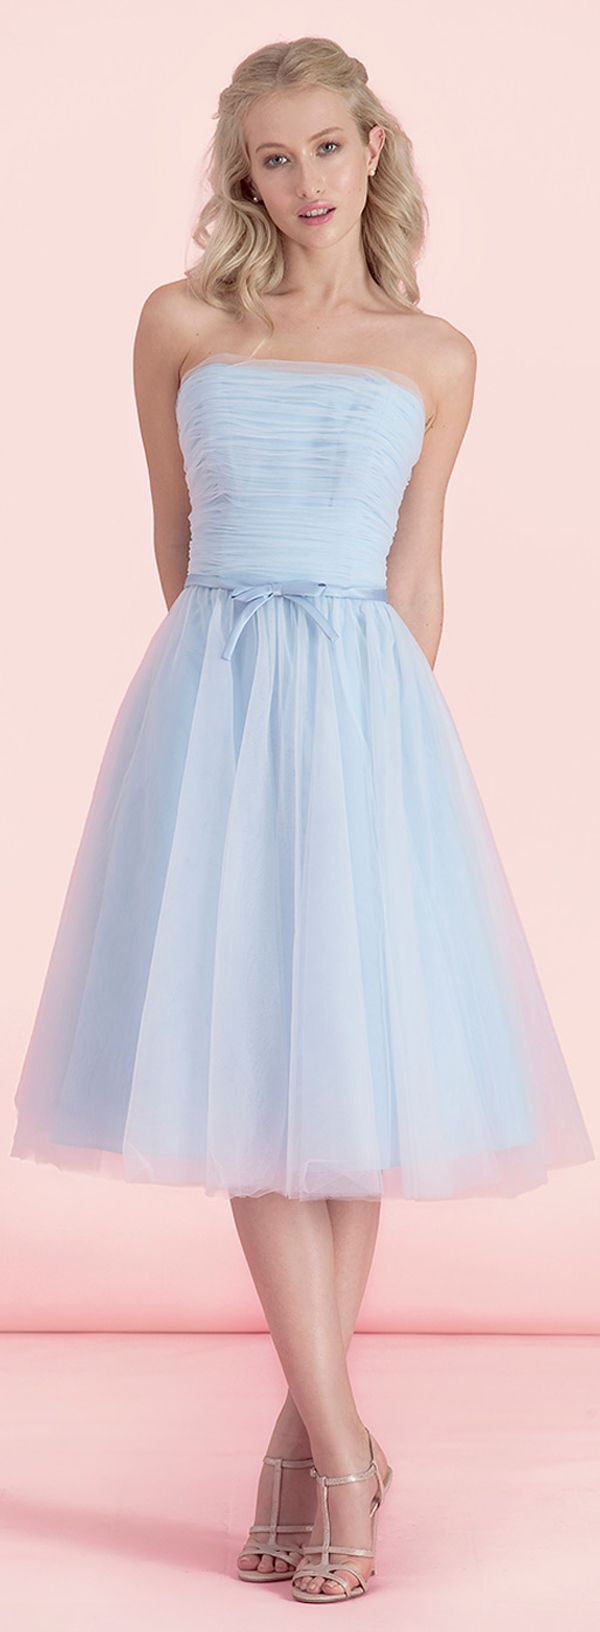 Best 25 tea length bridesmaid dresses ideas on pinterest tea best 25 tea length bridesmaid dresses ideas on pinterest tea bridesmaids dresses tea bridesmaids gowns and vintage bridesmaid dresses ombrellifo Image collections